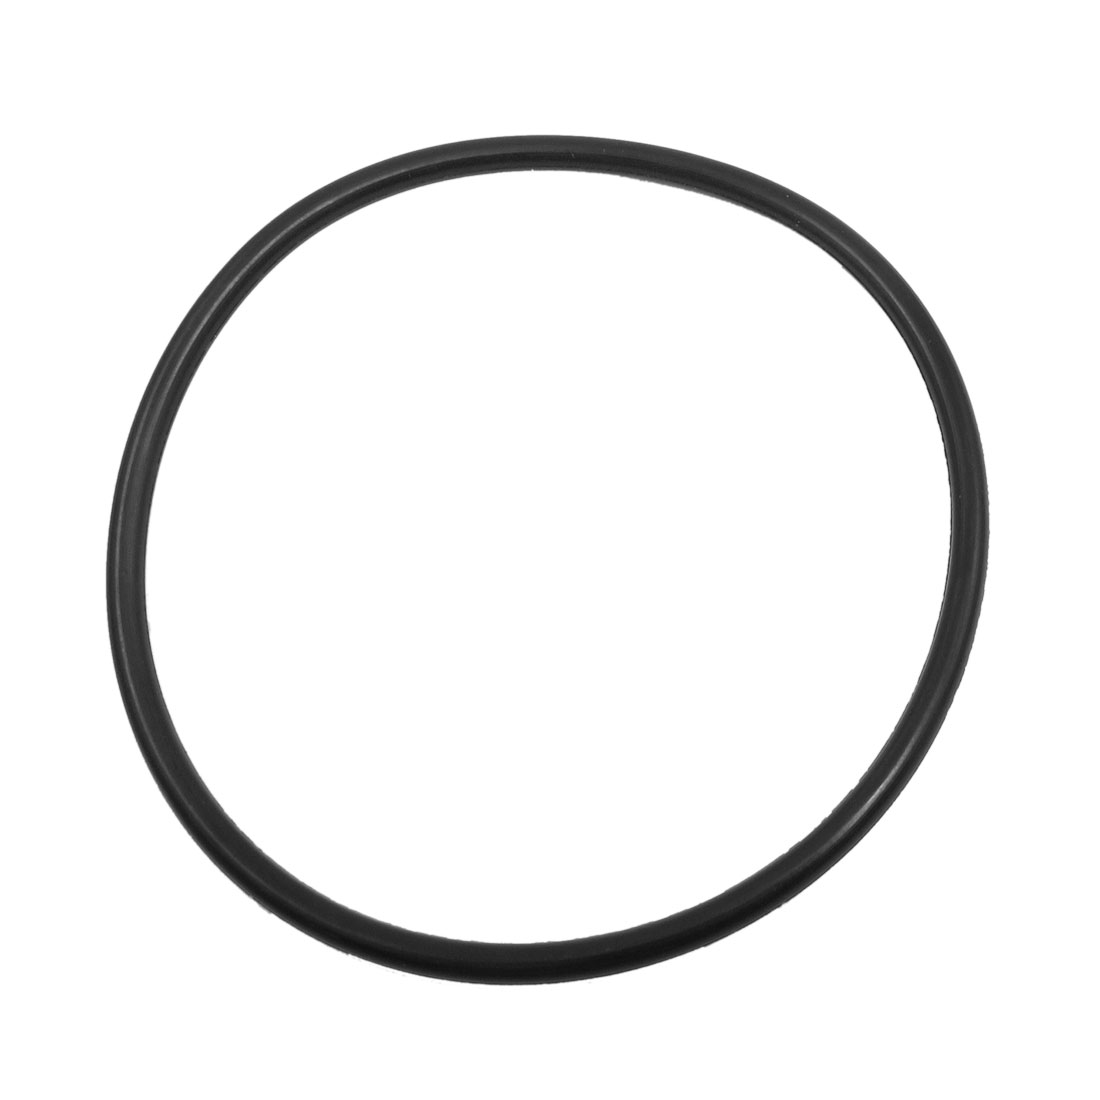 115mm x 5mm Industrial Flexible Rubber O Ring Seal Gasket